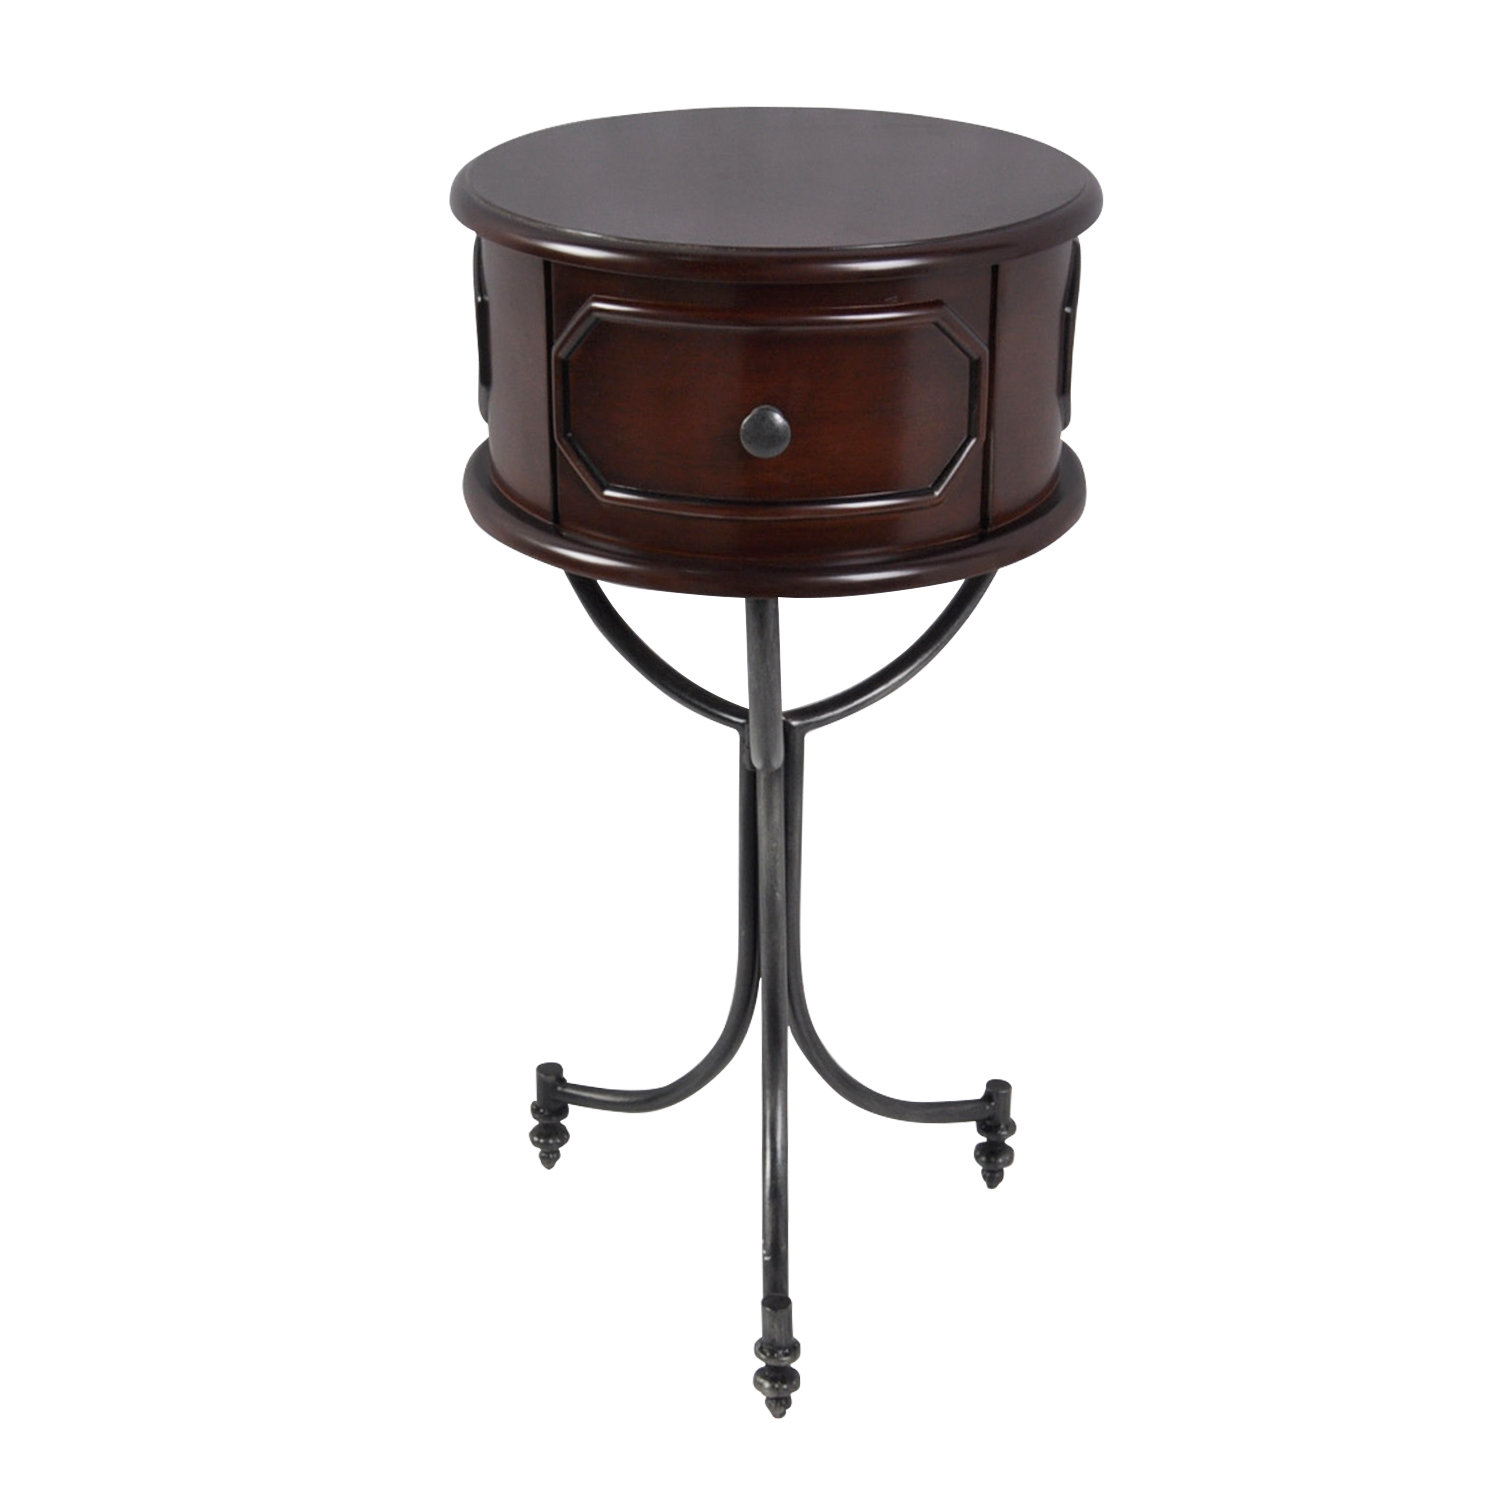 bronze drum table matthew end accent grey occasional chair white round nesting tables wood pedestal diy bar bobs furniture clearance ikea lack shelf shabby chic monarch